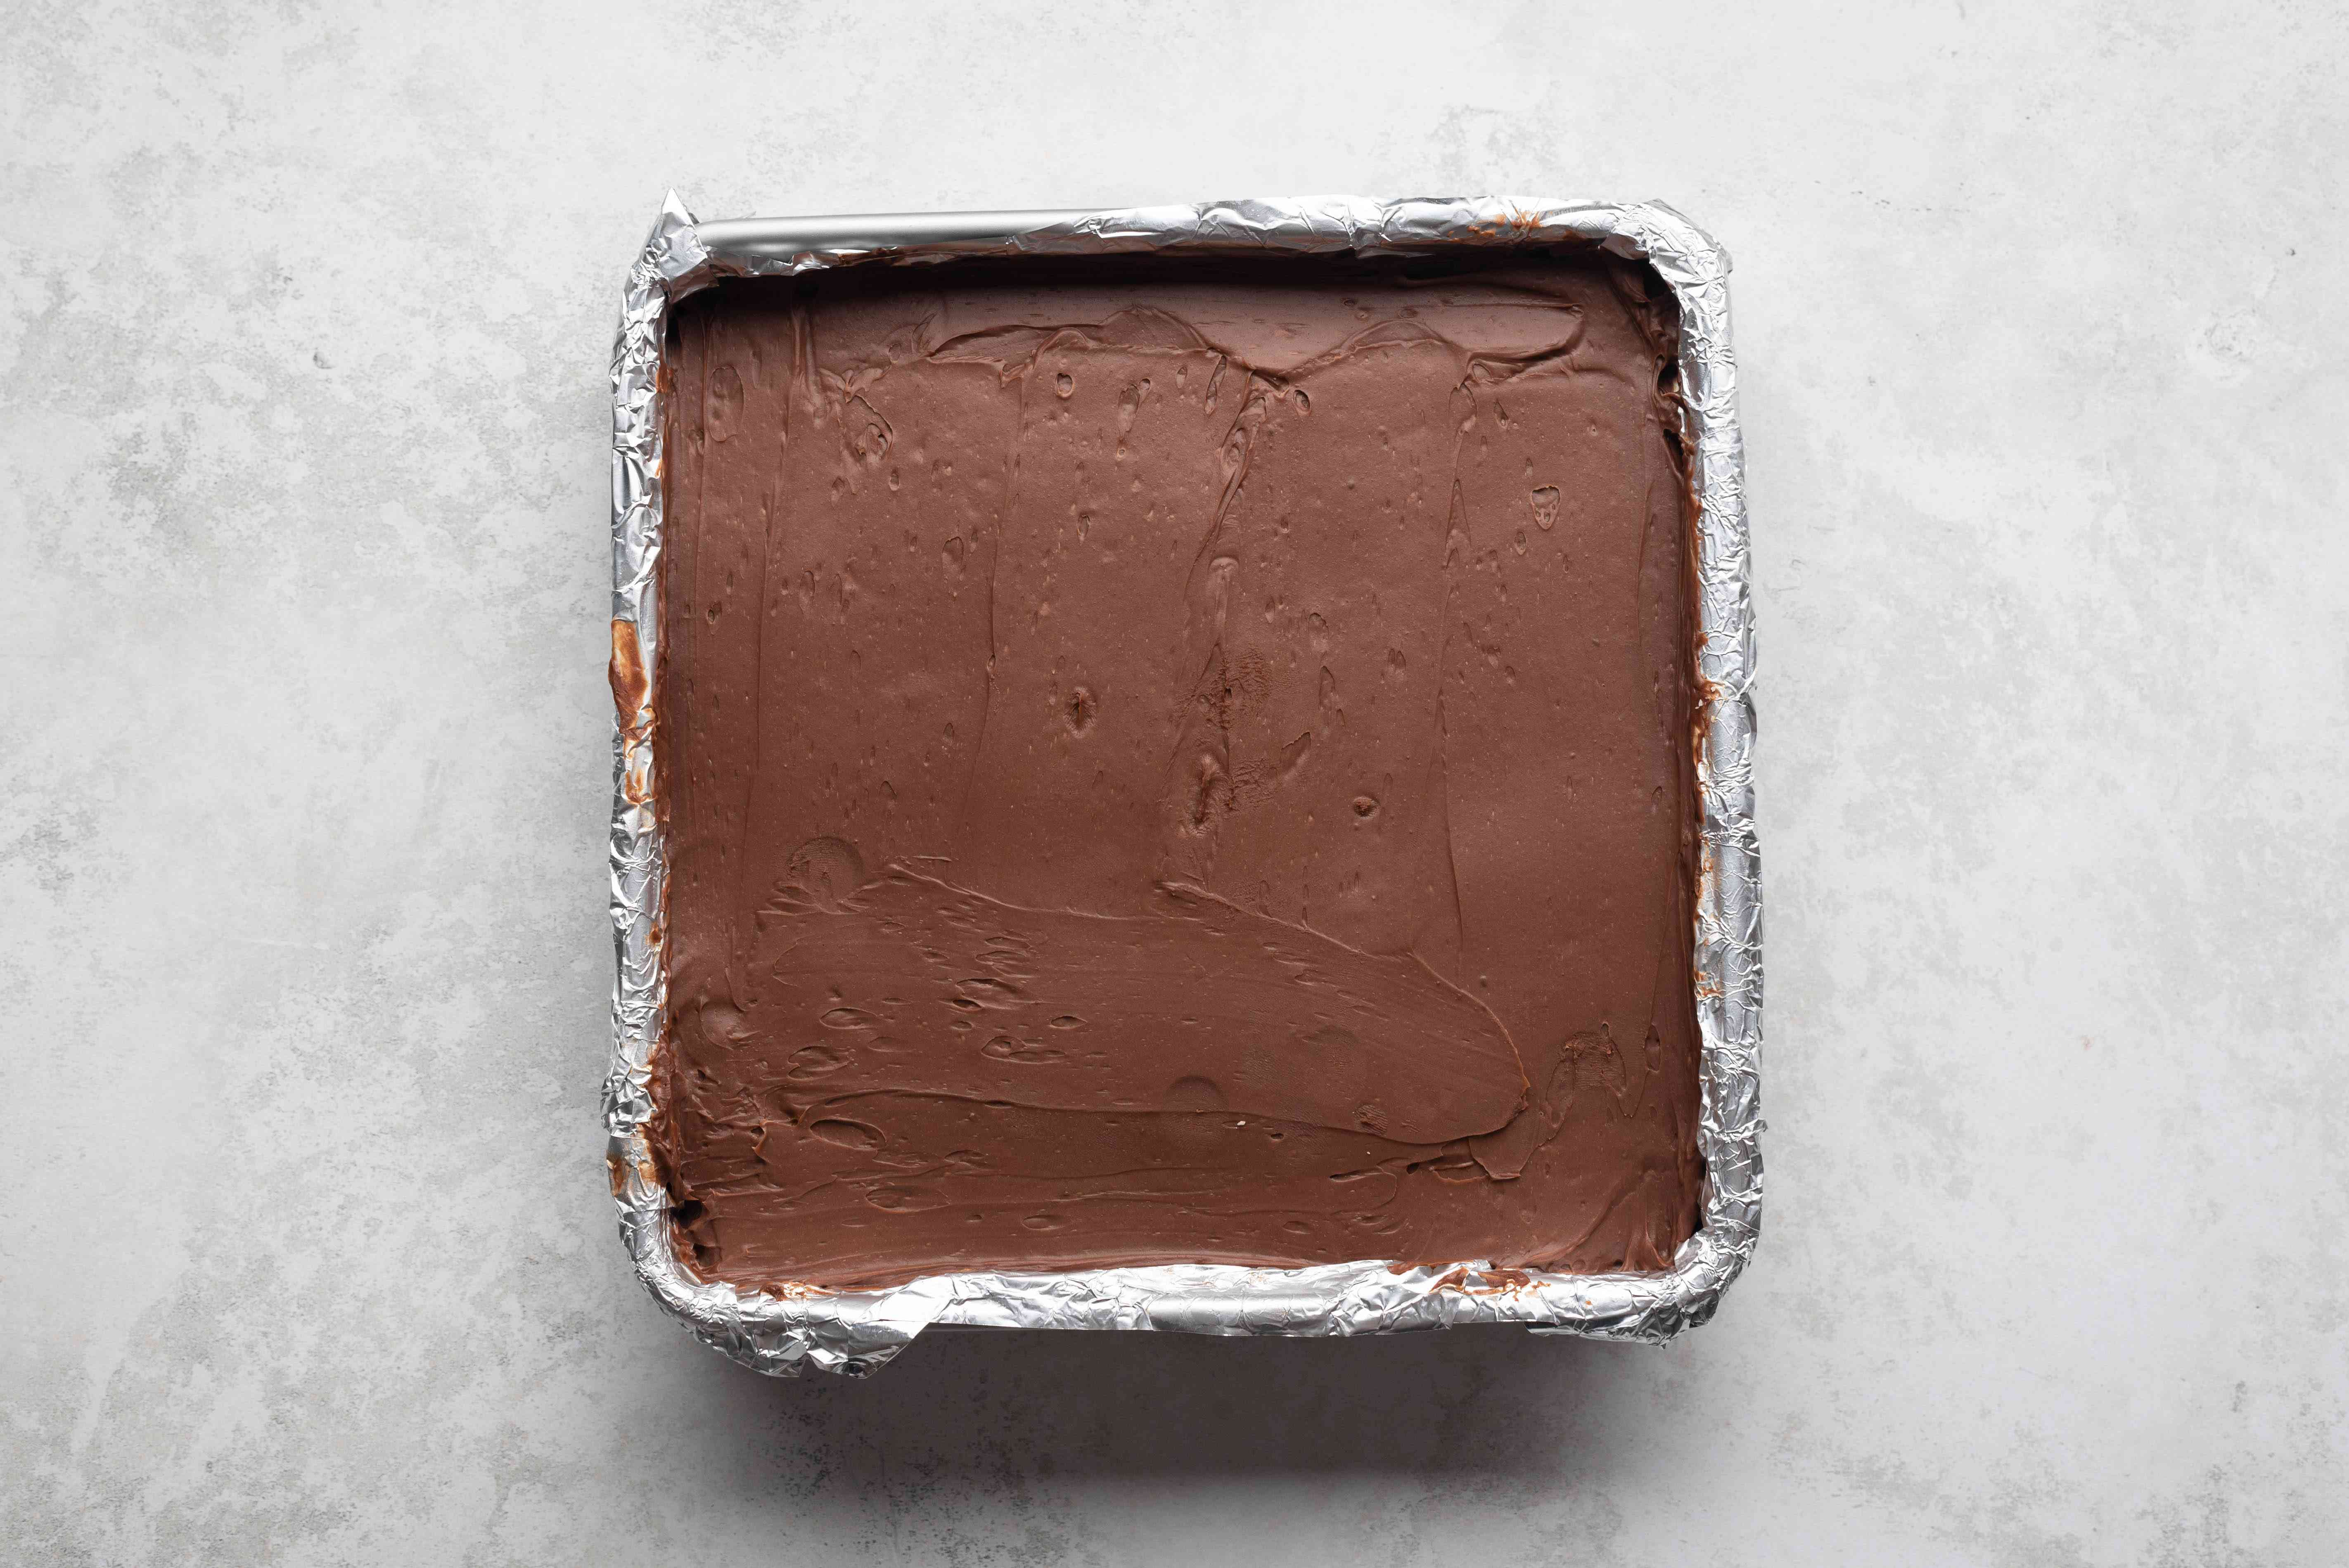 chilled chocolate mixture in a baking pan